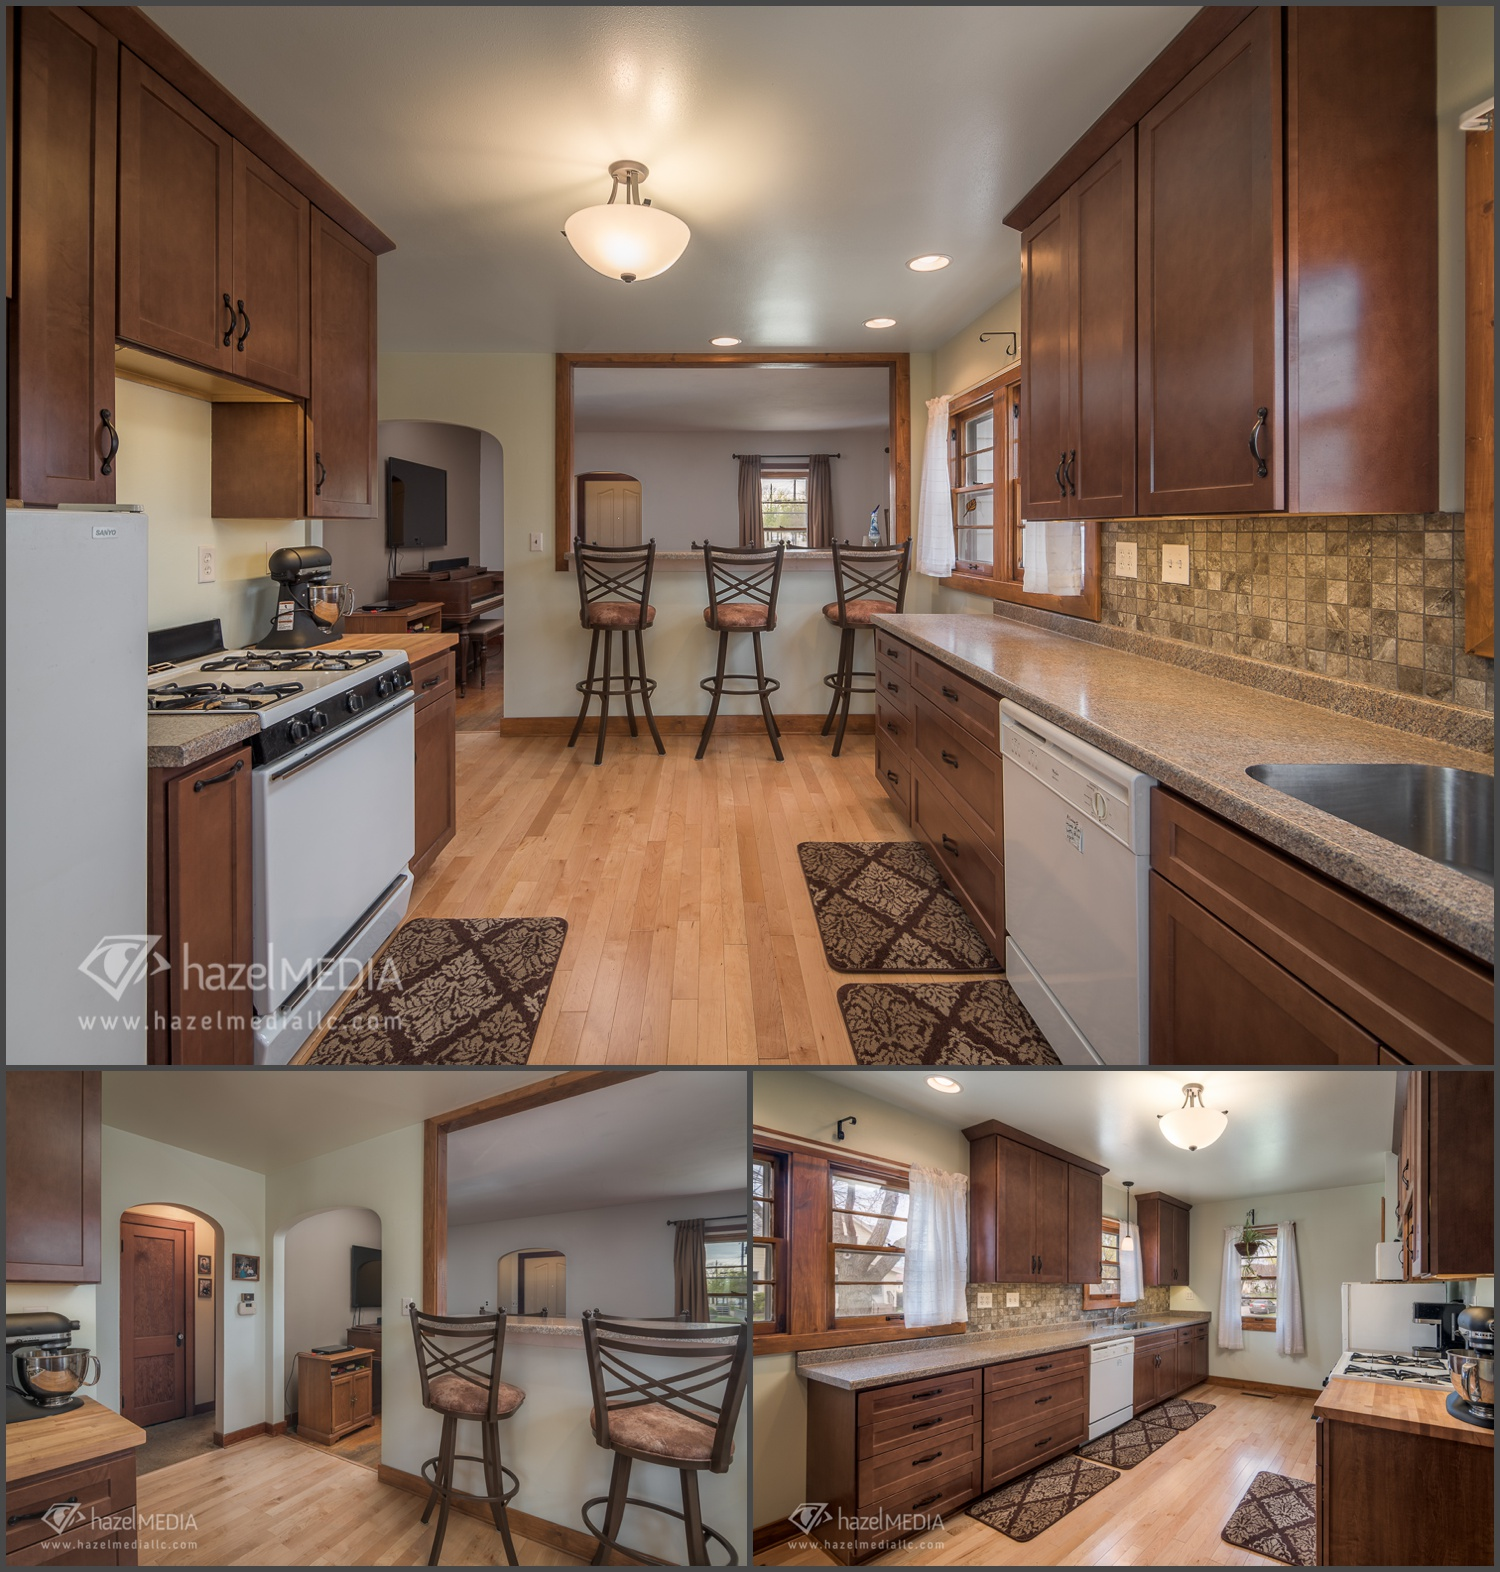 Real Estate Photography, Wisconsin Real Estate Photography, Real Estate  Photographer, Wisconsin Real Estate